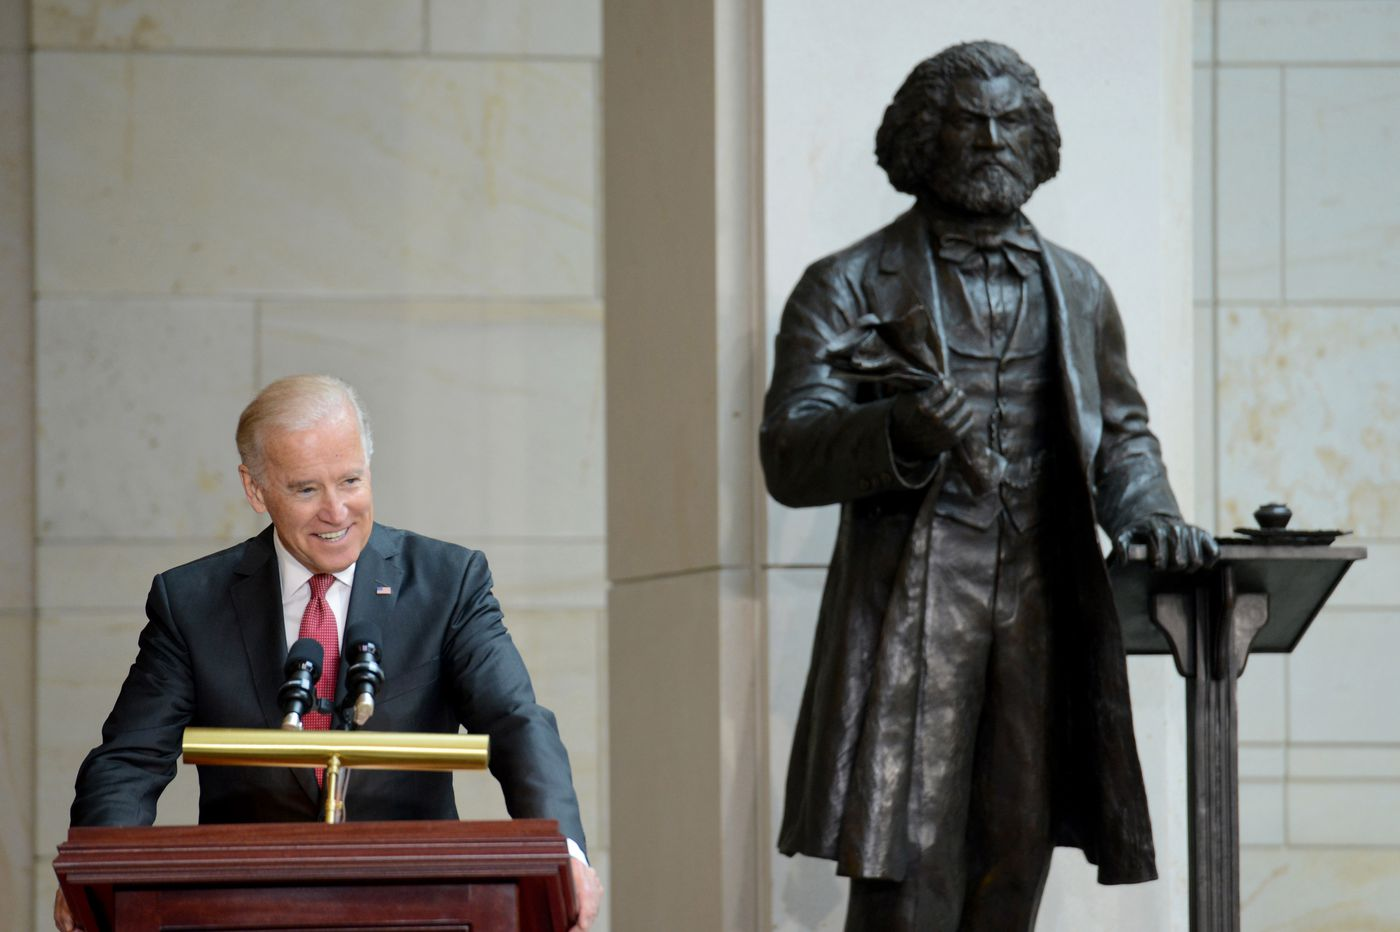 Biden's tough talk on desegregation in 1970s could face new scrutiny